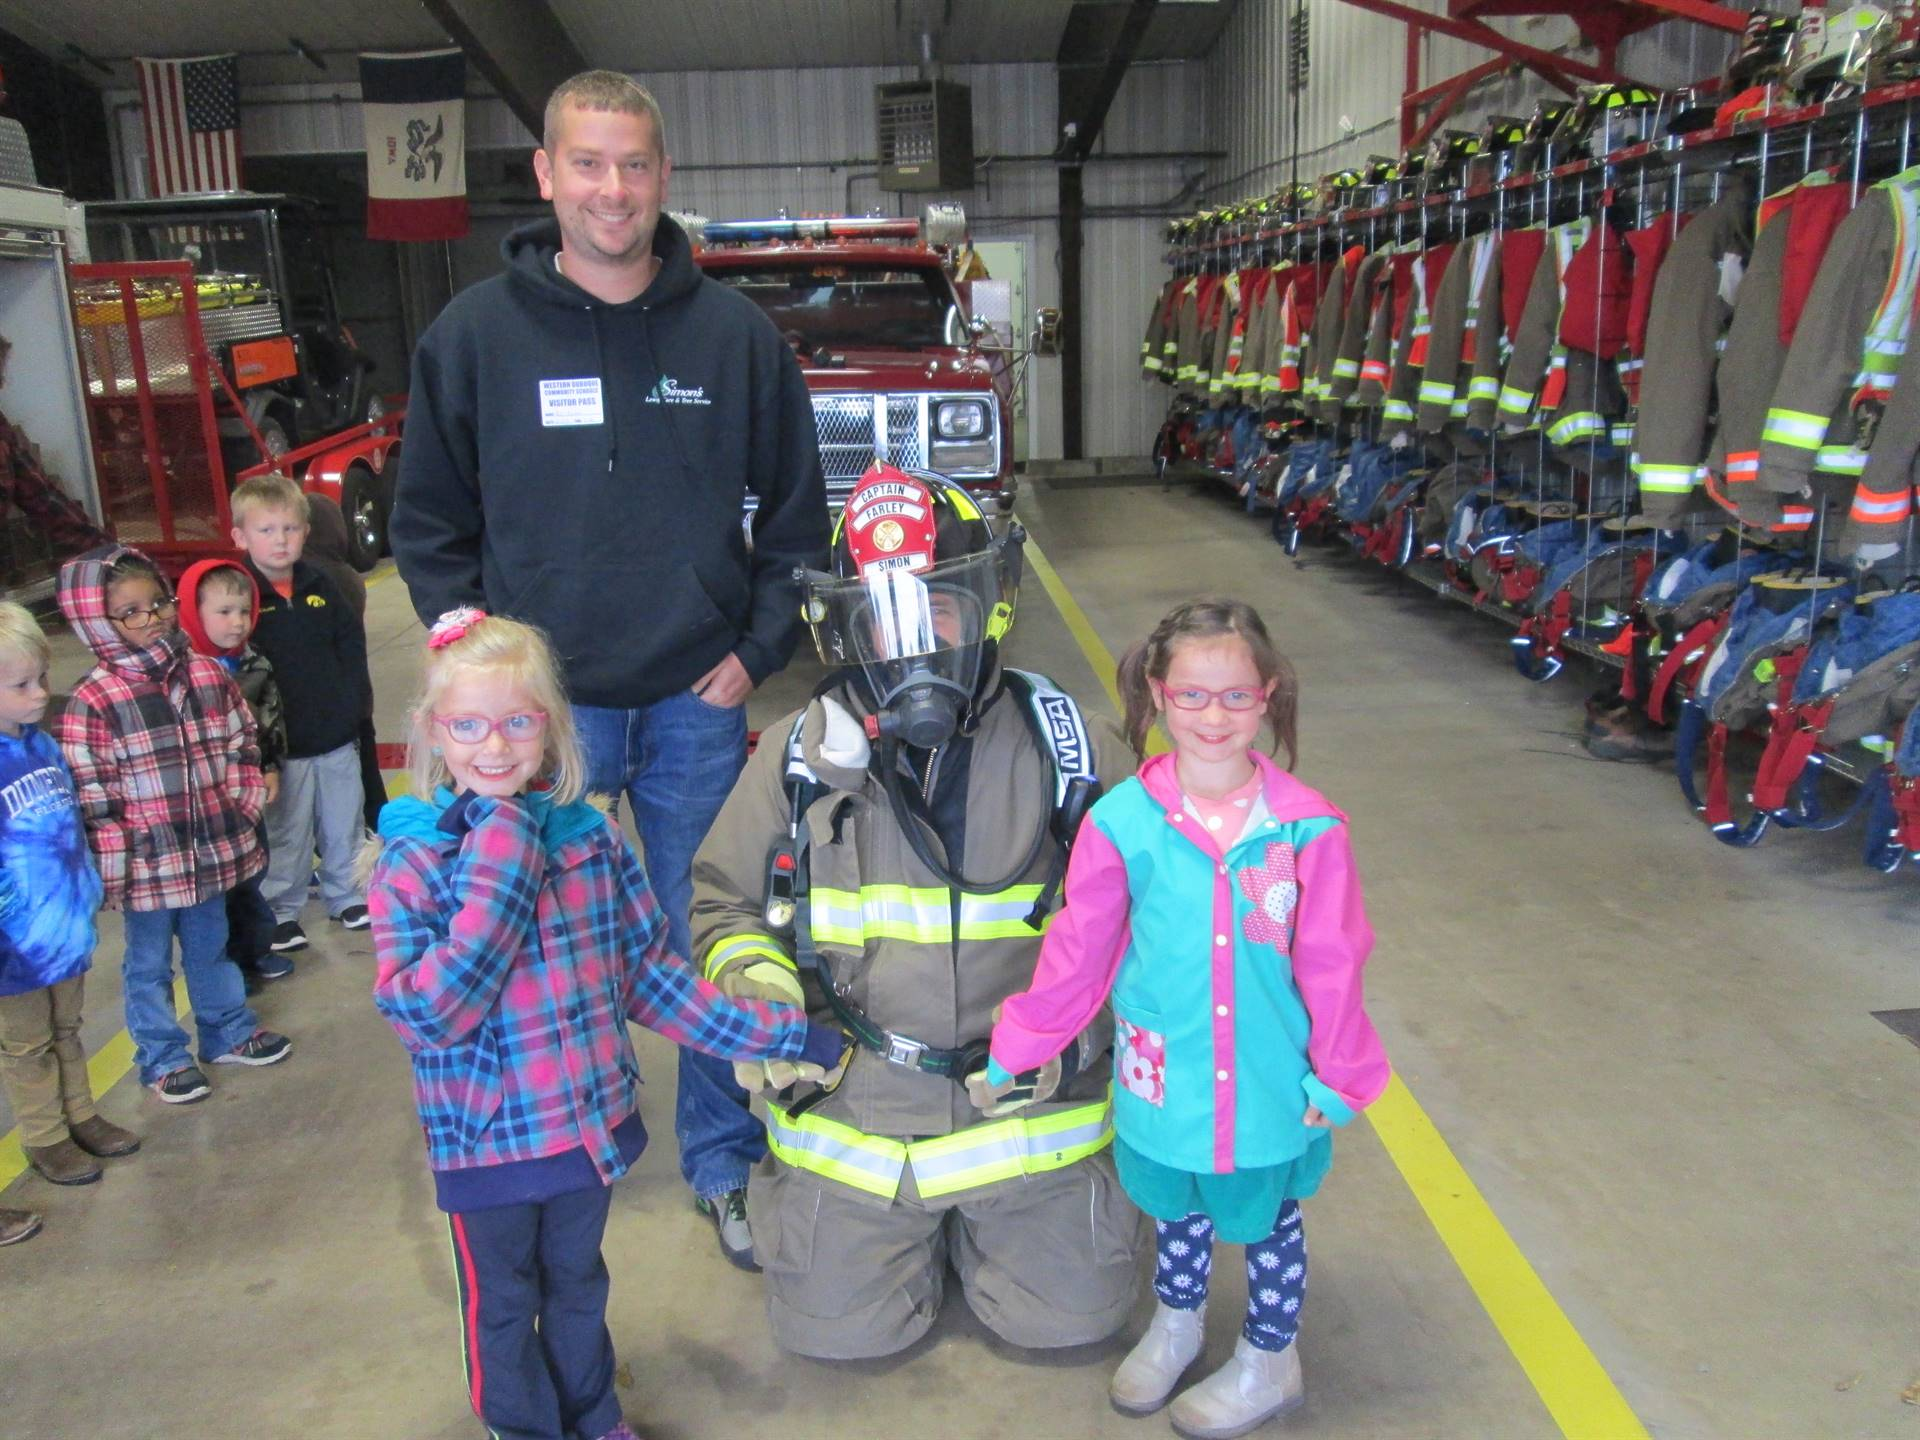 Preschool visit to the fire station